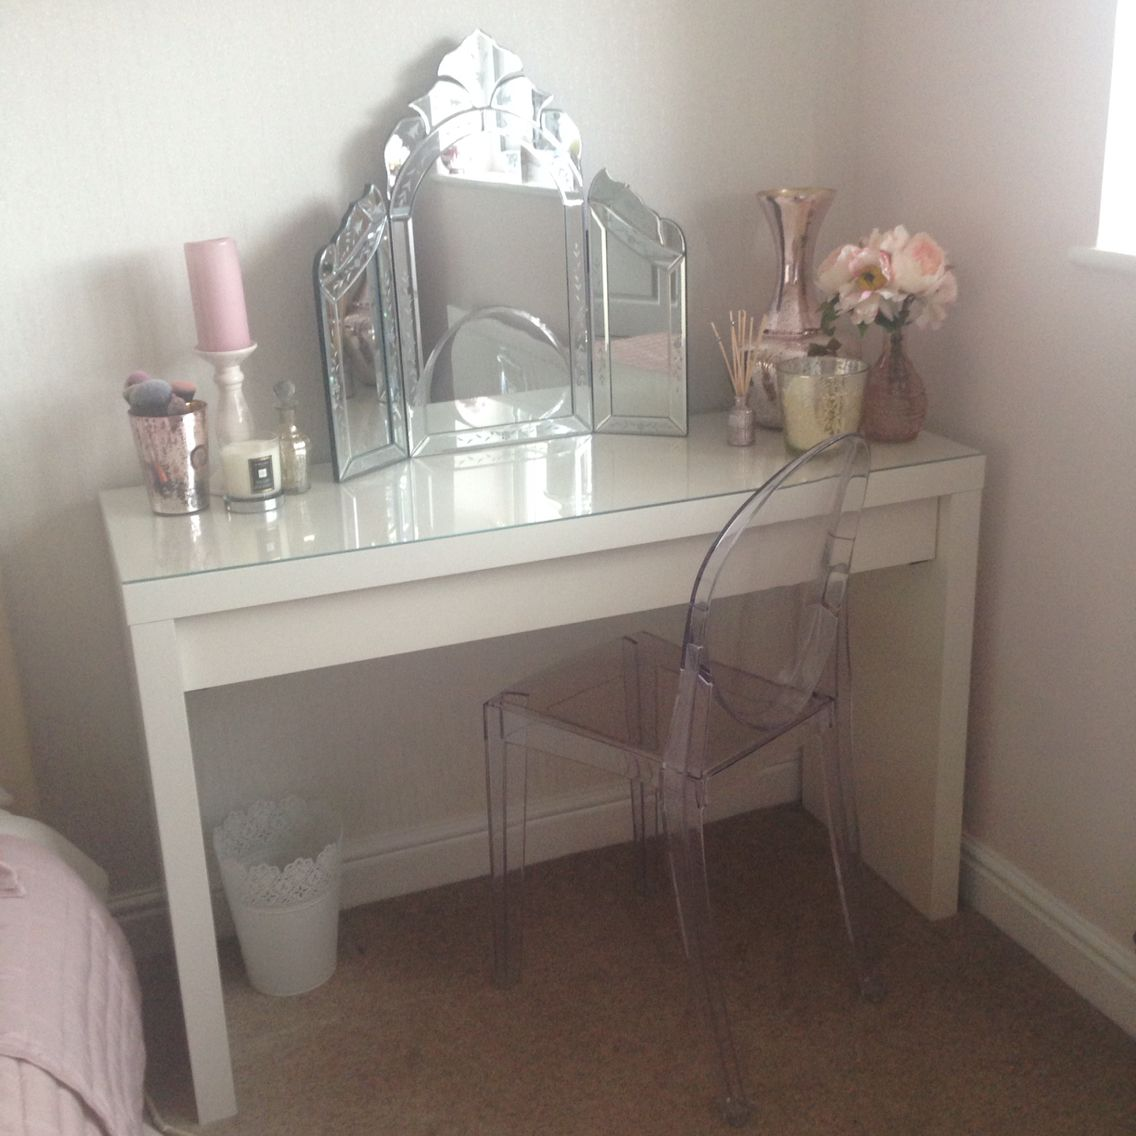 New Ikea Malm vanity and Ghost chair. So pleased, such prettiness